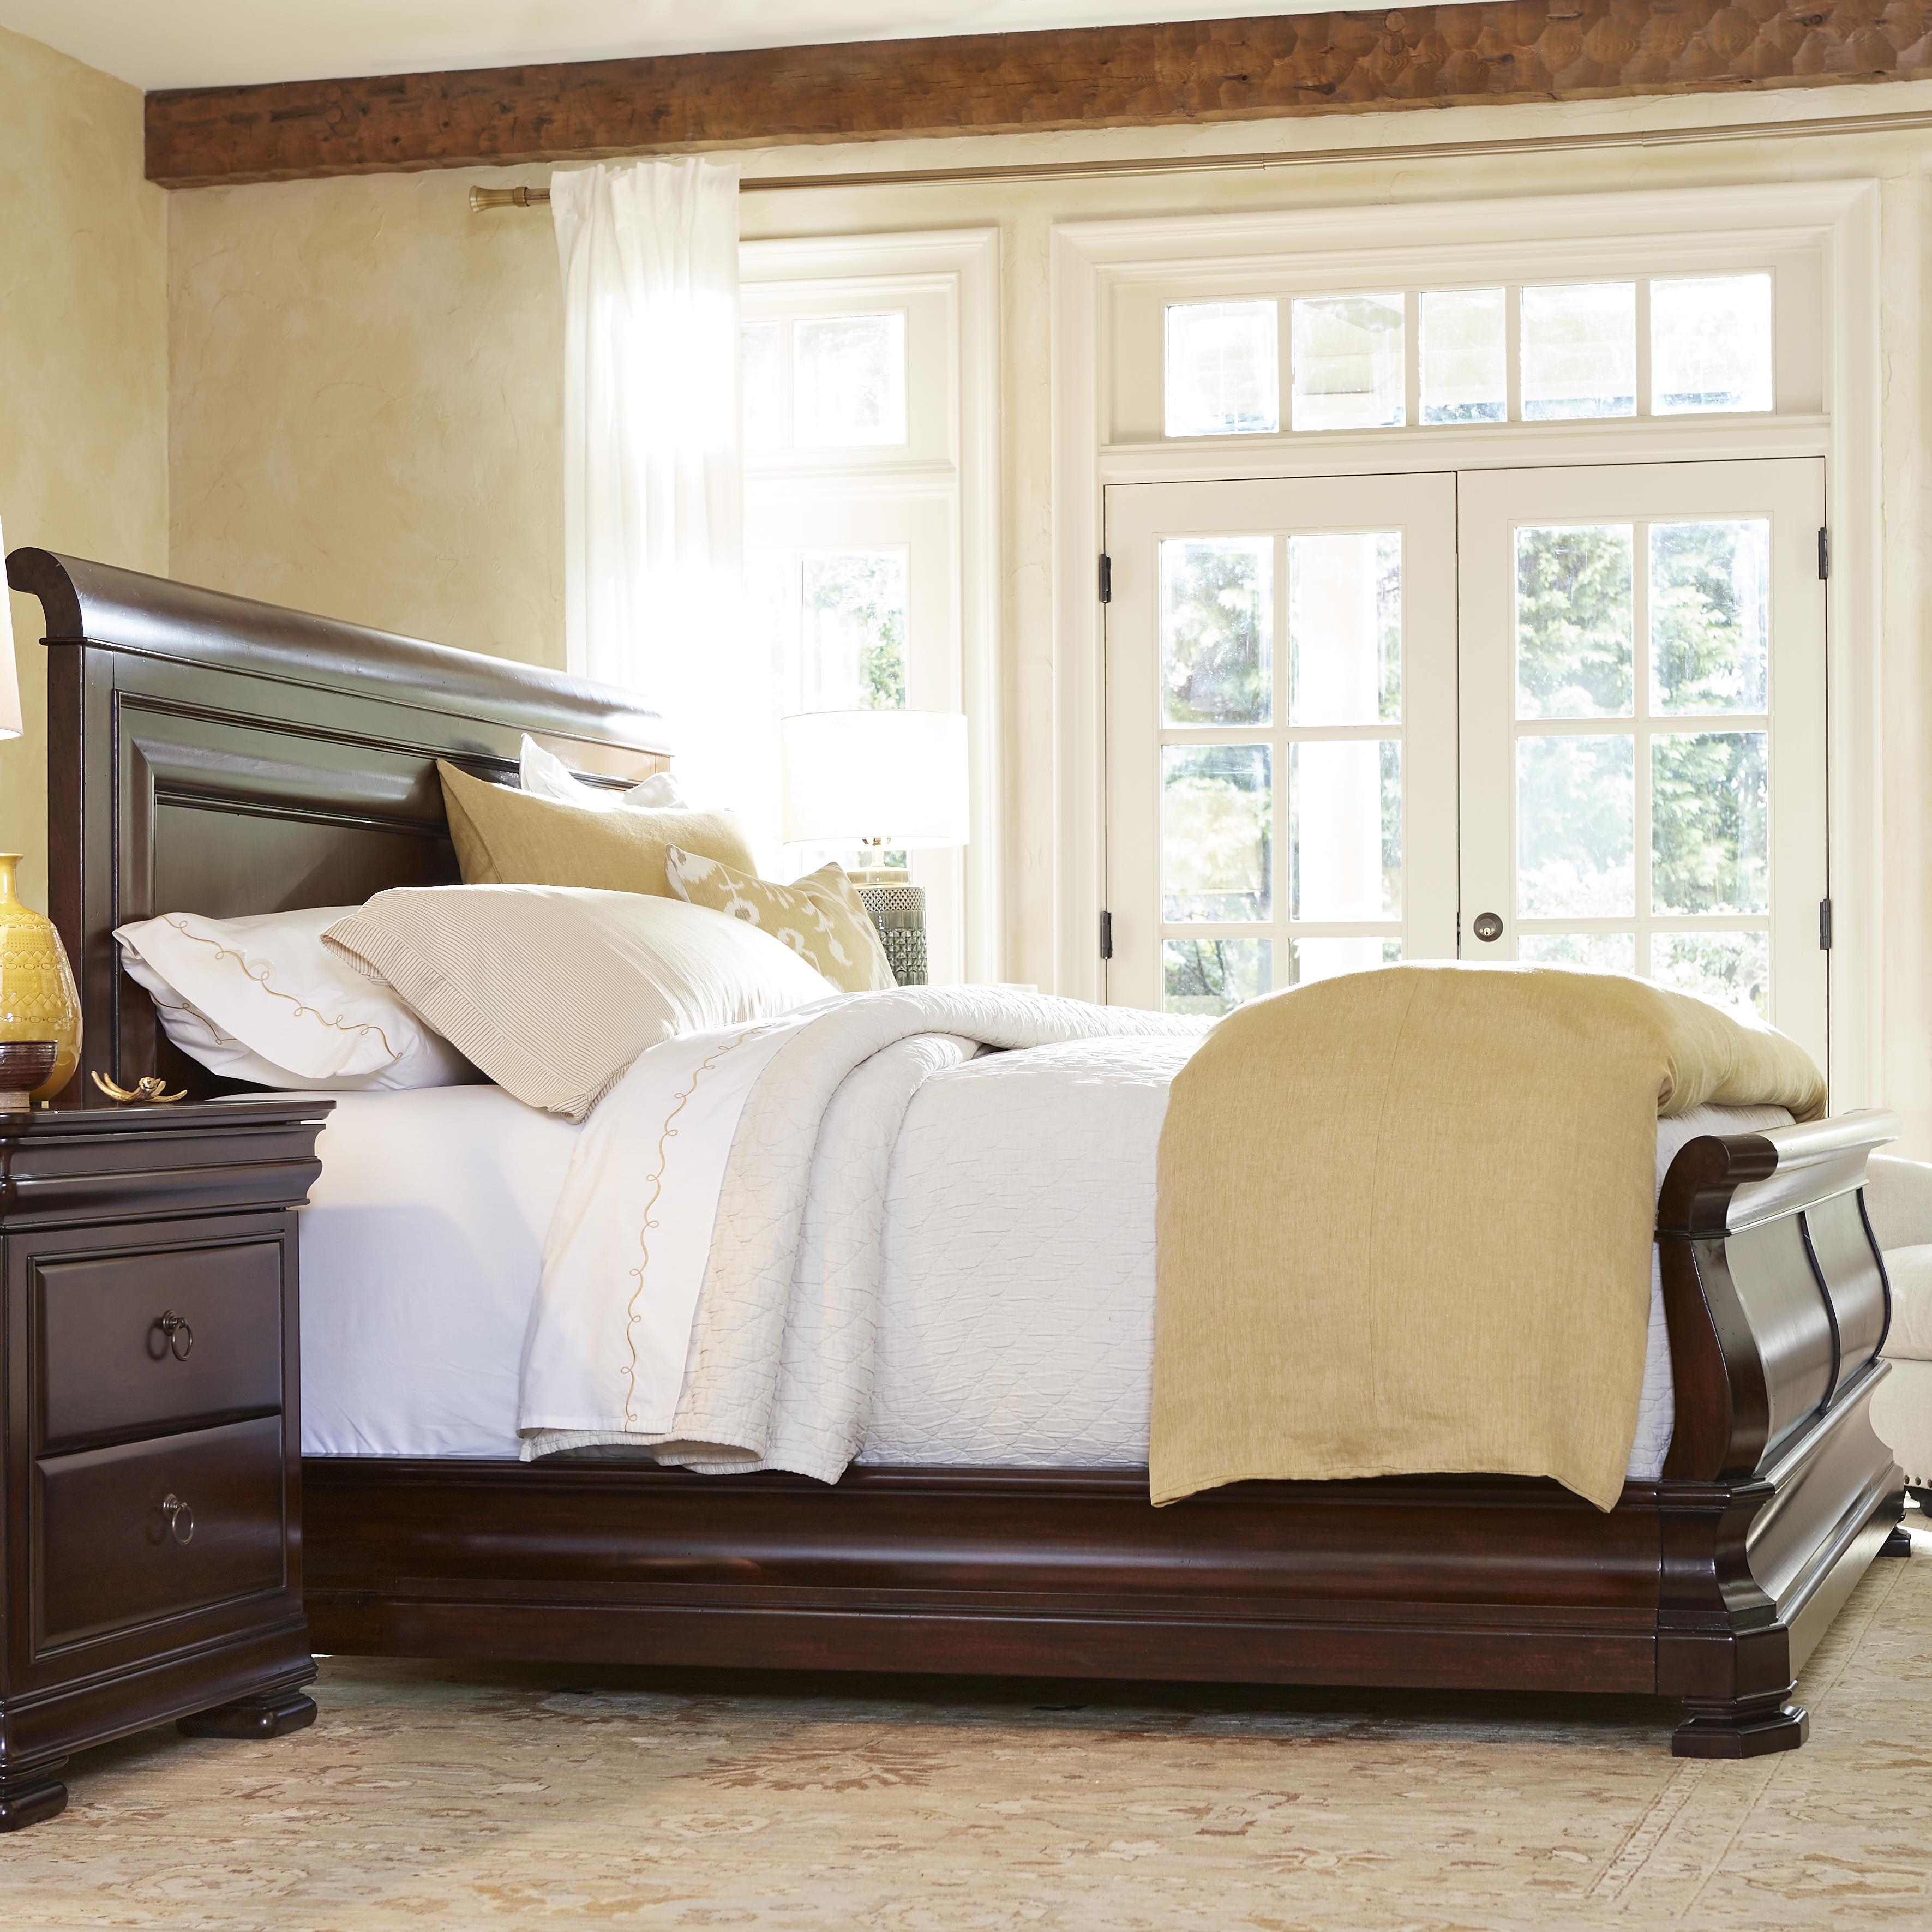 Reprise Queen Sleigh Bed by Universal at Baer's Furniture